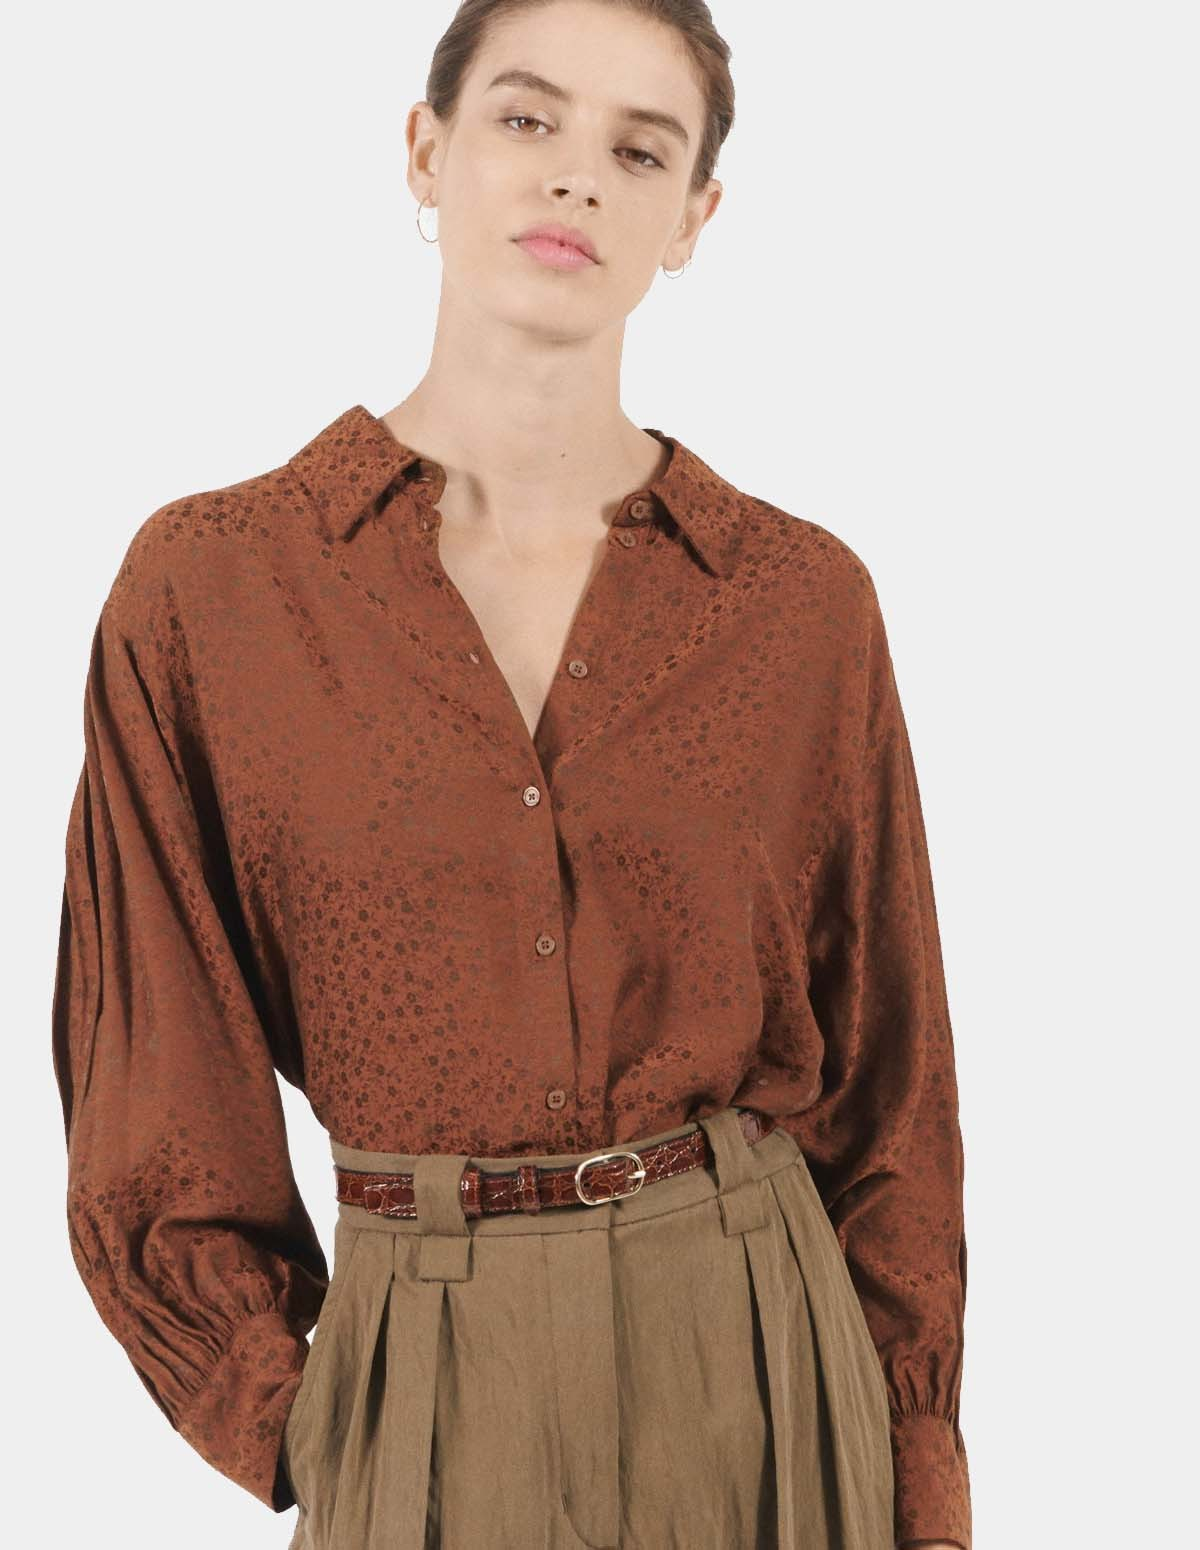 Masscob Lavinia Top - PECAN